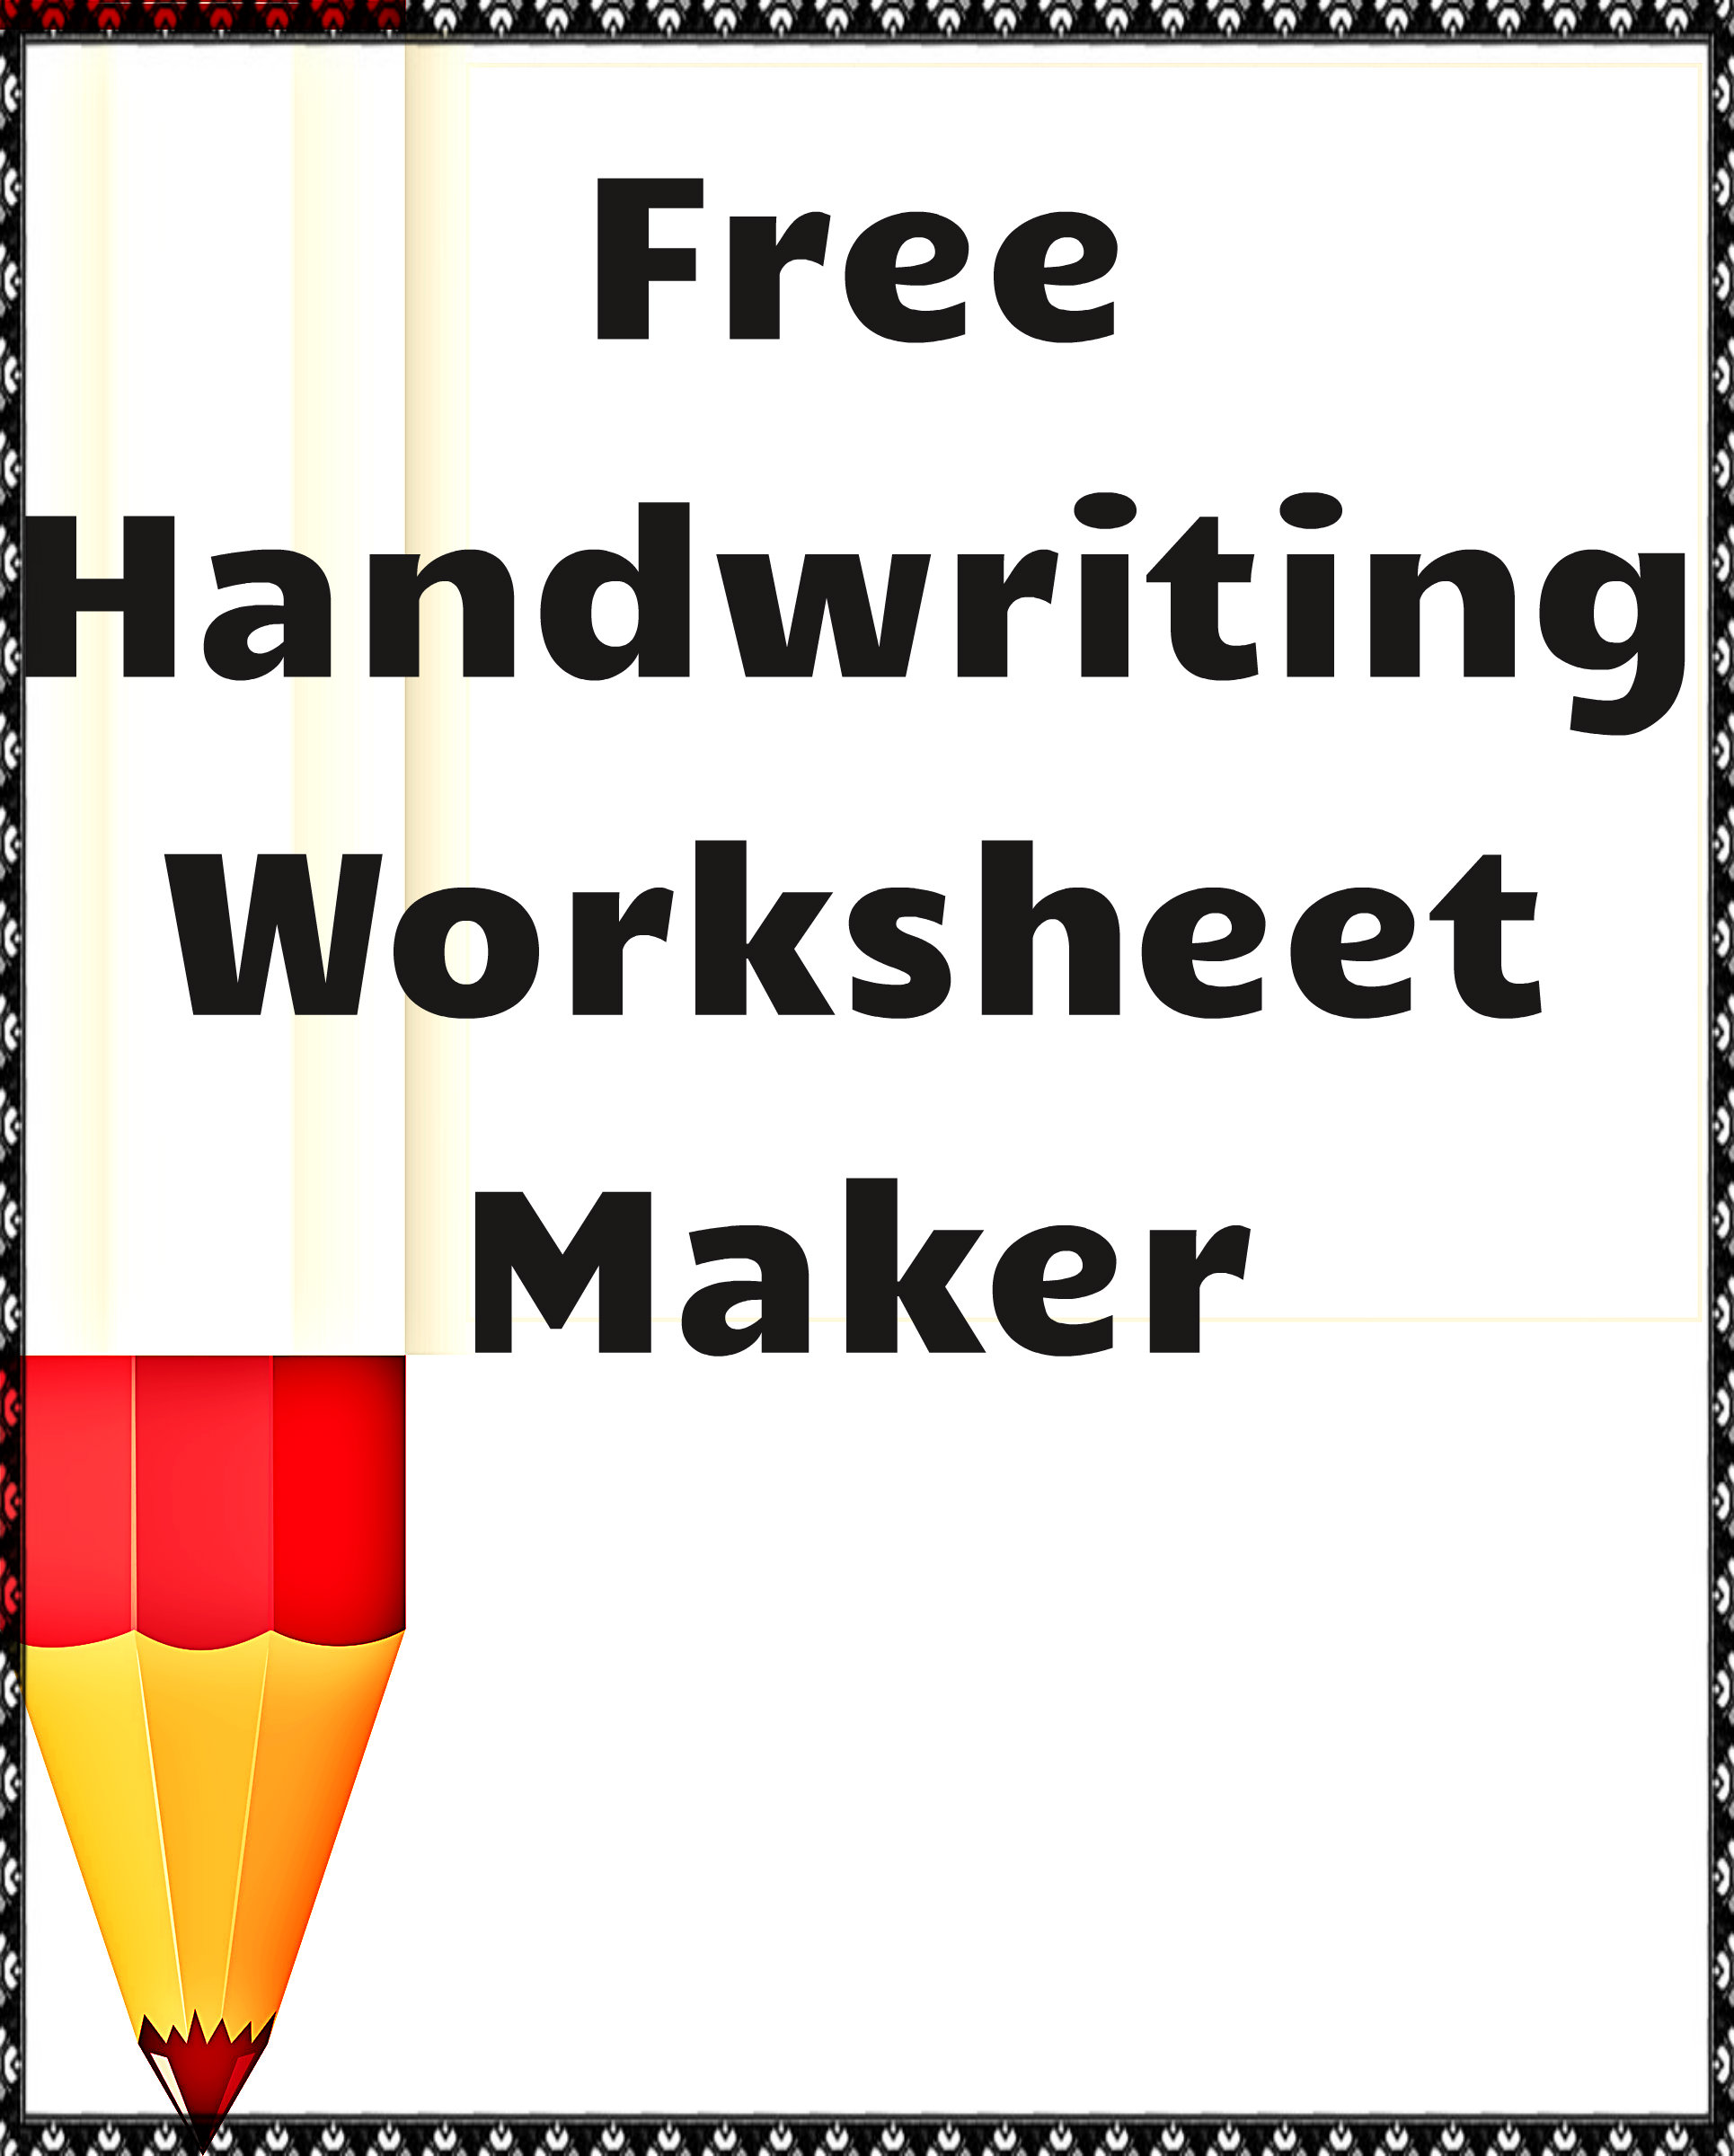 Printables Handwriting Worksheet Maker handwriting worksheet maker free classroom tools readyteacher com maker